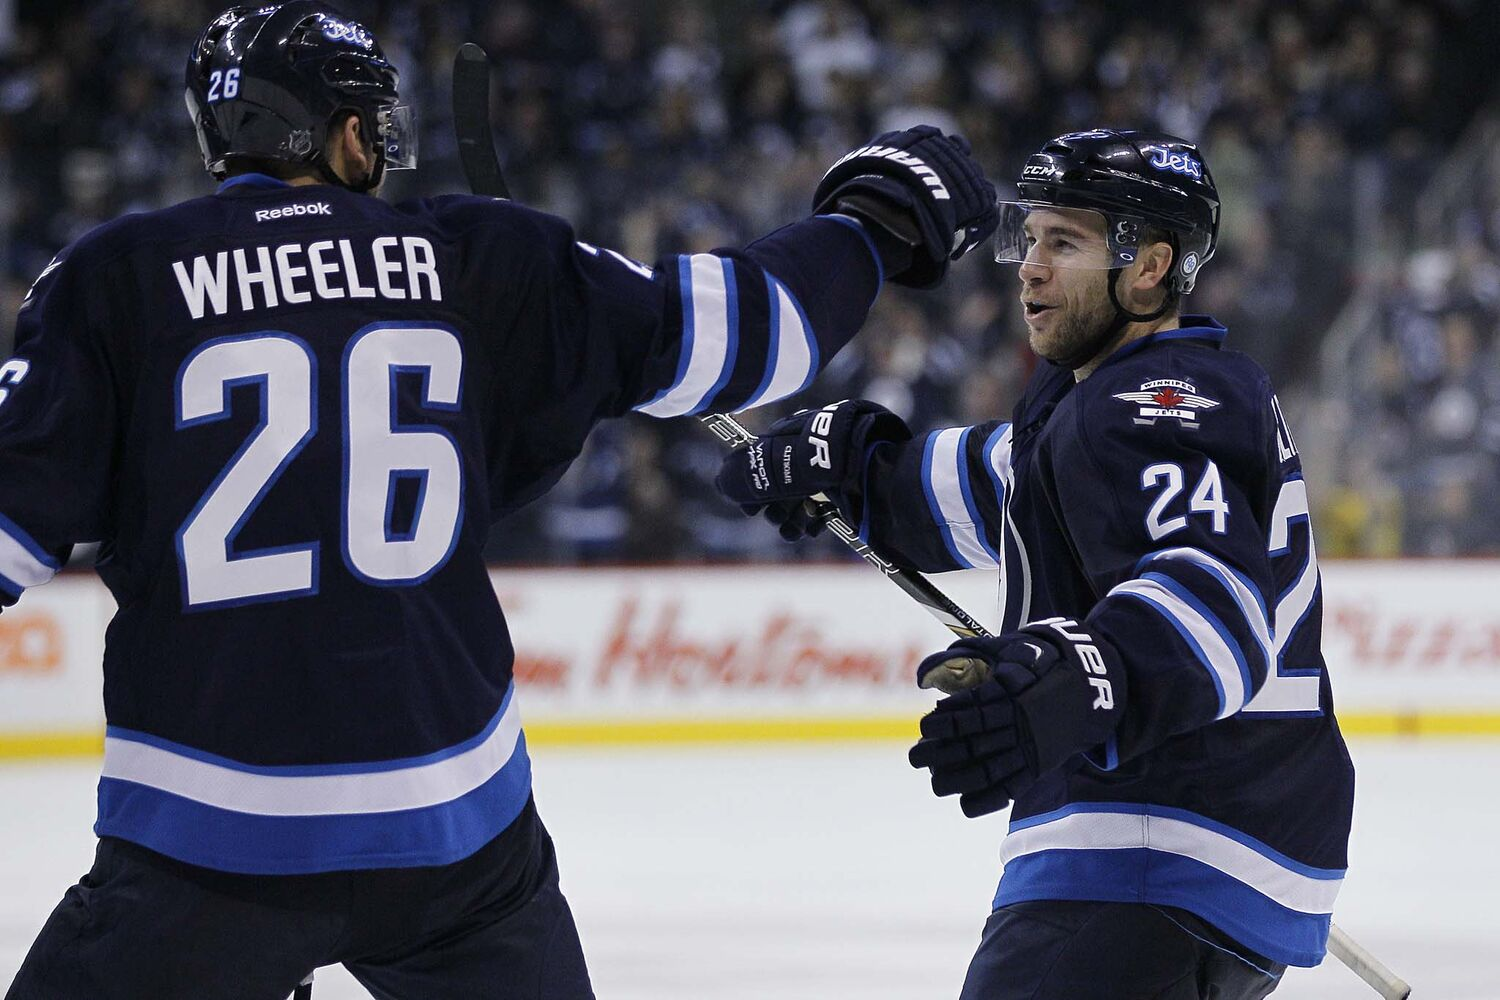 Winnipeg Jets' Grant Clitsome (24) and Blake Wheeler (26) celebrates Clitsome's goal against the San Jose Sharks during second period action.